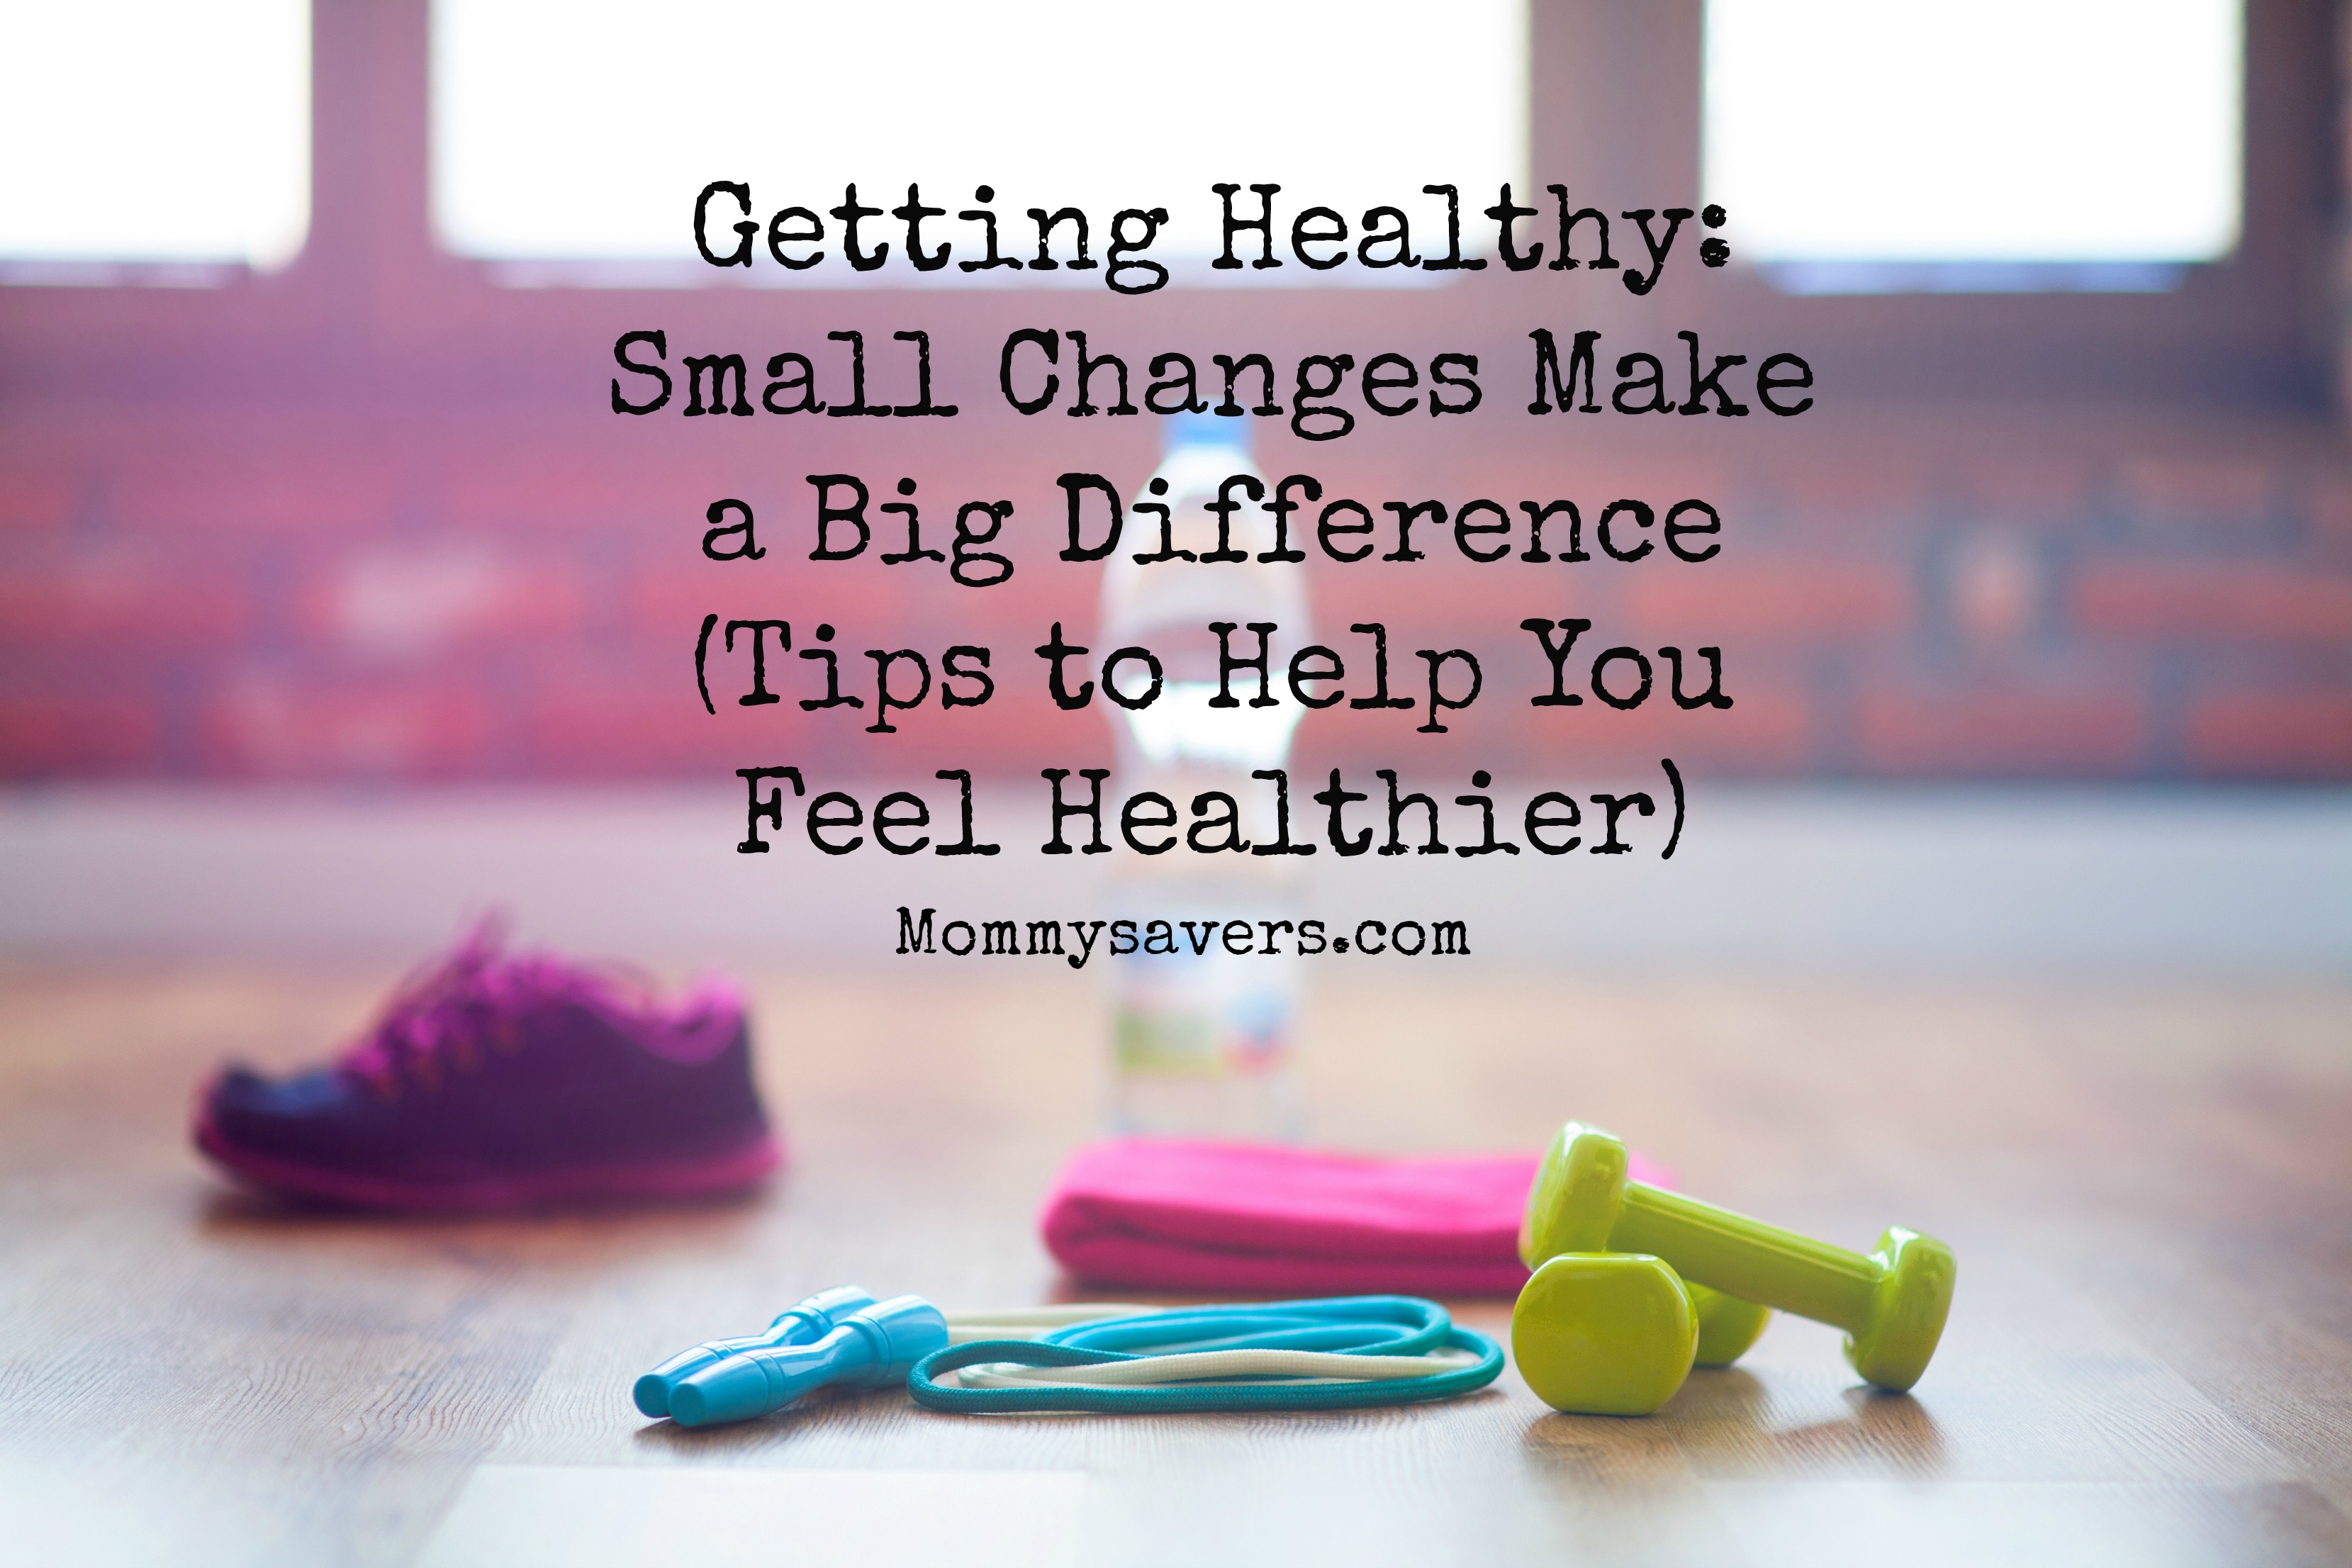 Small Healthy Changes